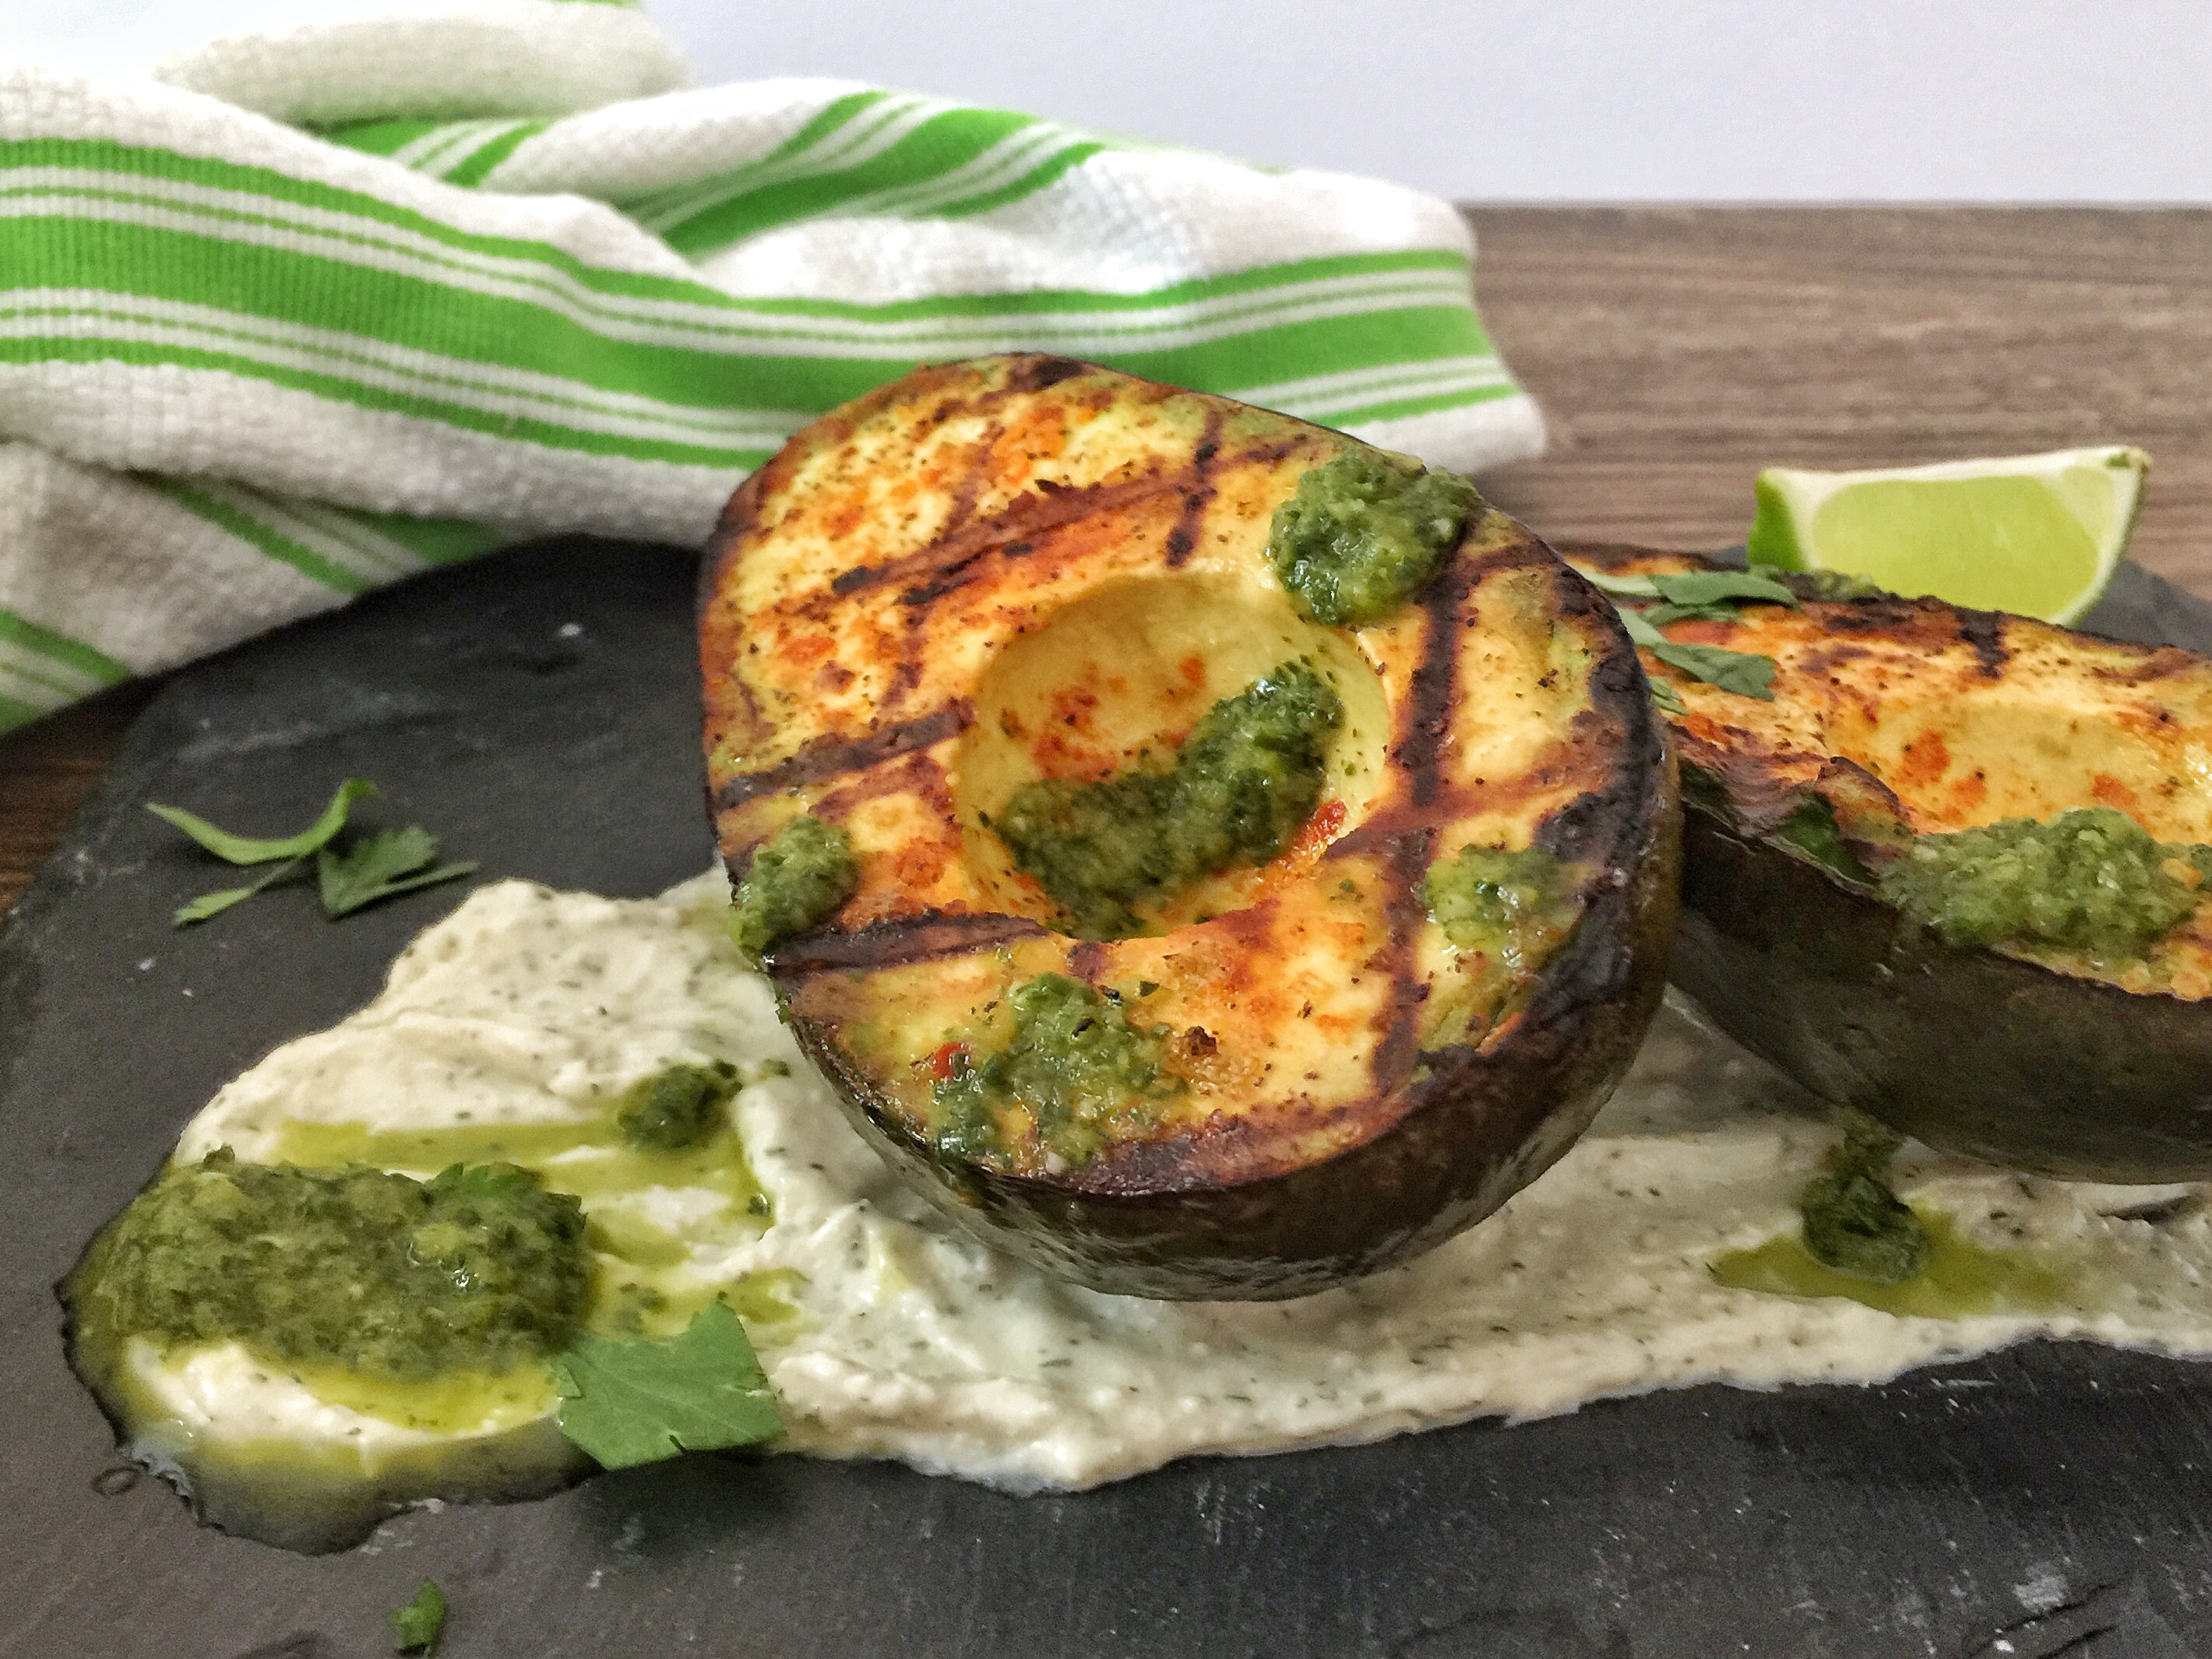 Grilled Avocado with Goat Cheese